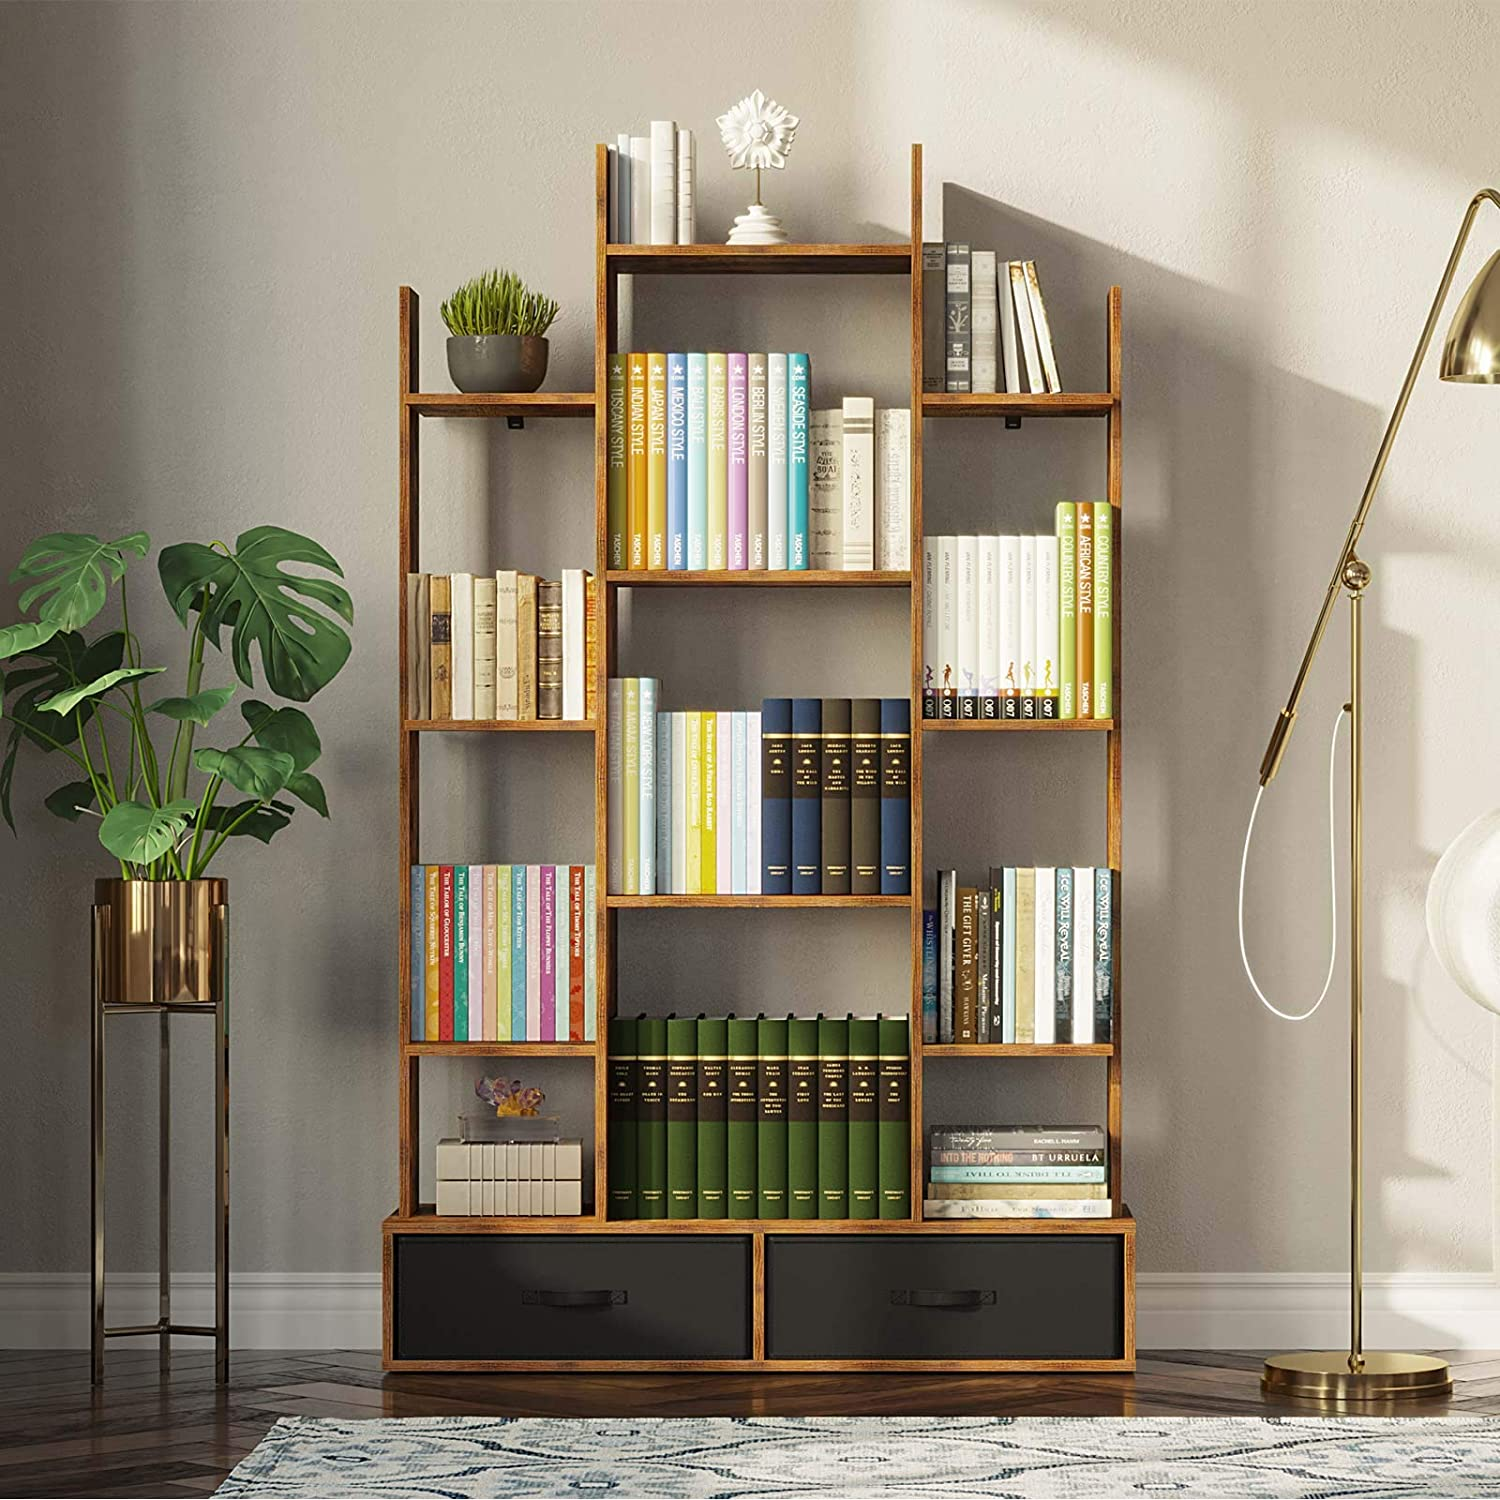 Free Standing Tree Bookcase Rolanstar Bookshelf Bookcase with Drawer Home Office Display Floor Standing Storage Shelf for Books CDs Plants,Utility Organizer Shelves for Living Room Bedroom